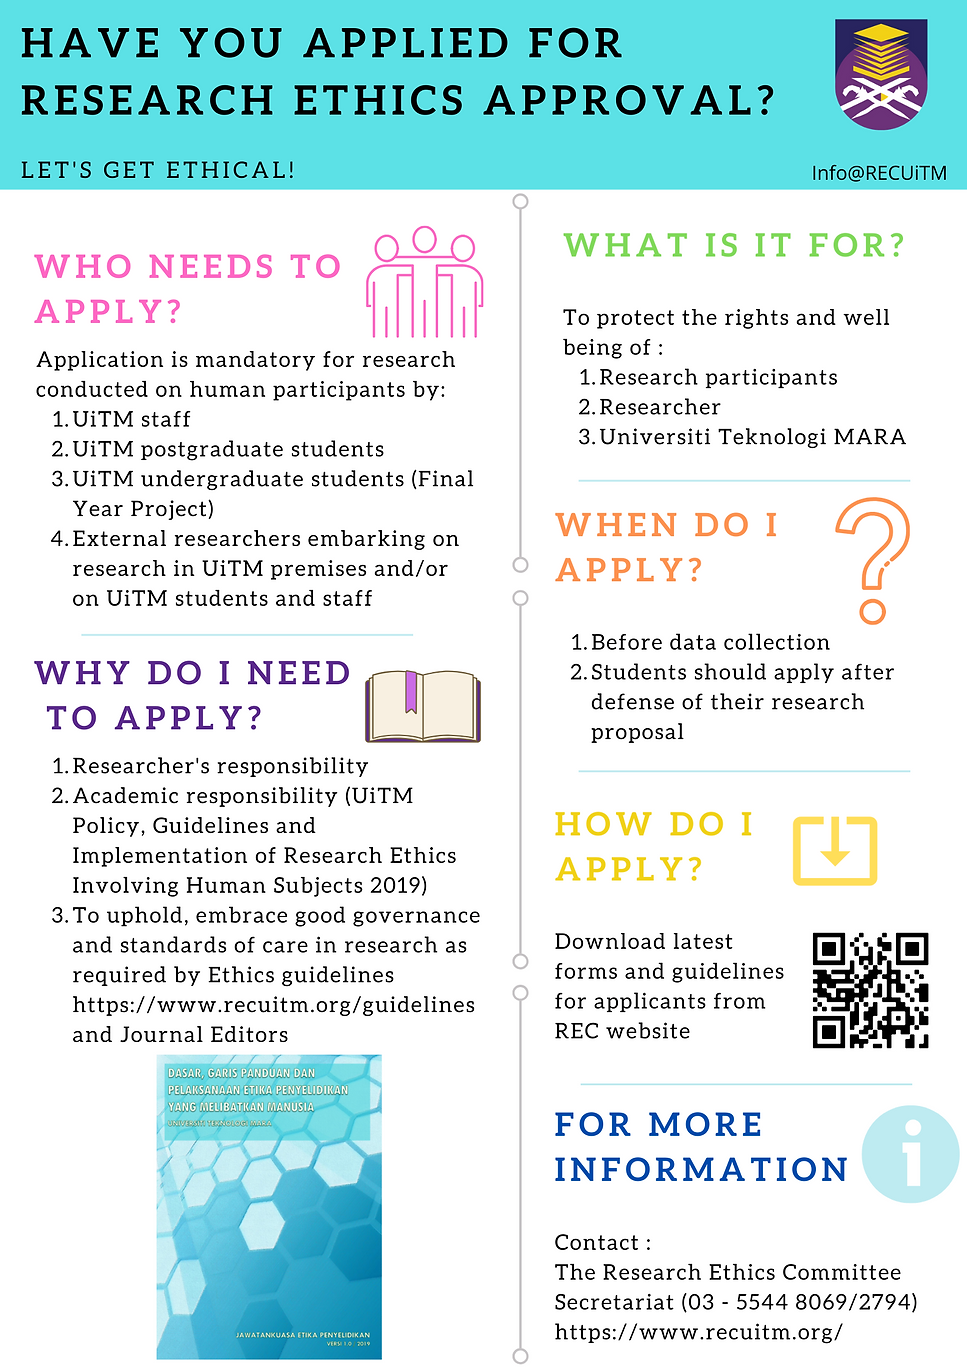 1. Infographic_have you applied for REA_